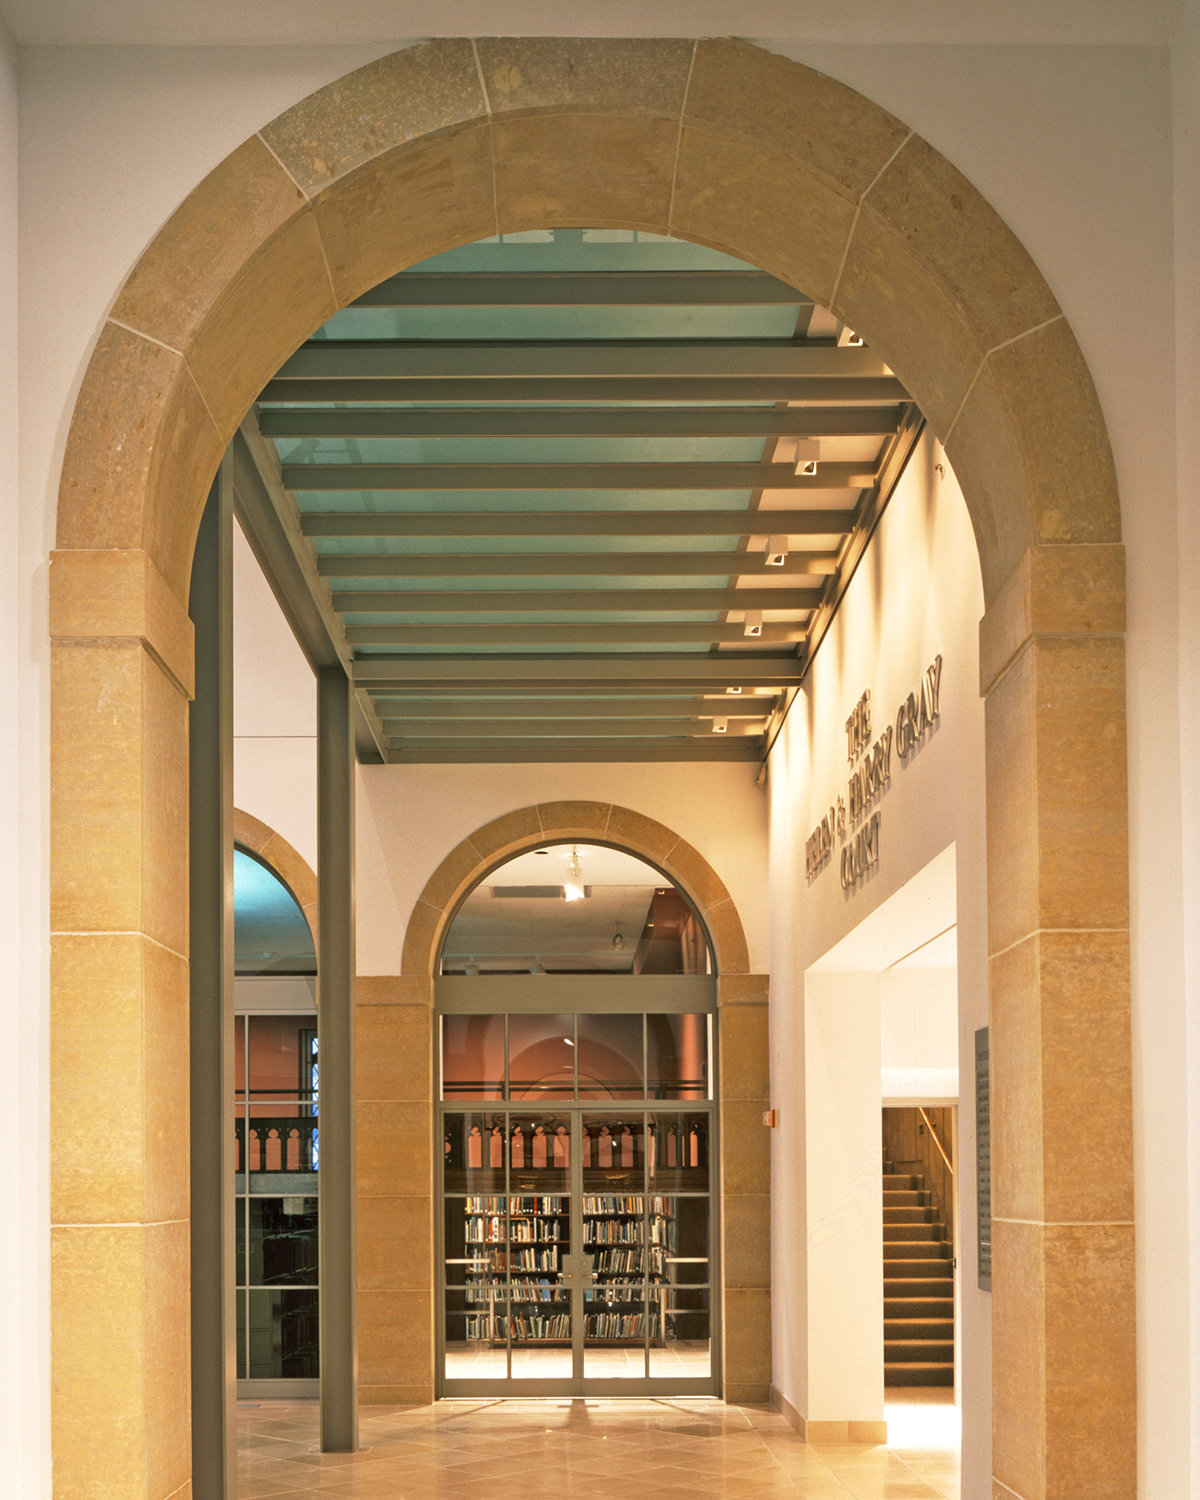 6 tskp wadsworth atheneum the helen and harry gray court limestone arches 1400 0x0x1200x1500 q85